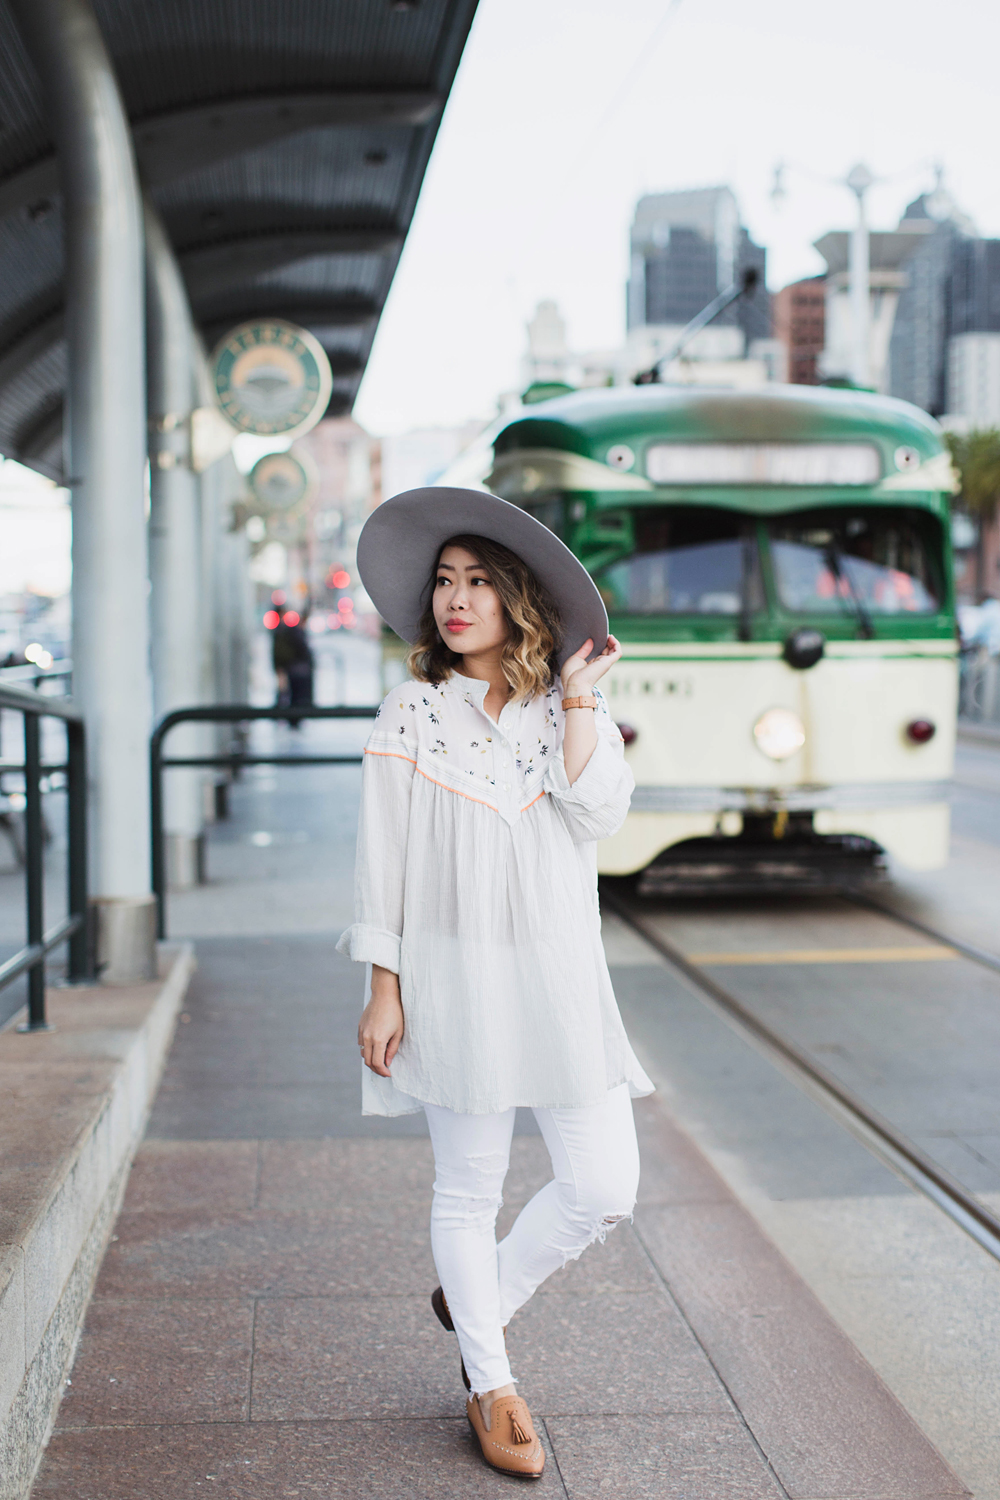 04freepeople-sf-sanfrancisco-hat-style-fashion